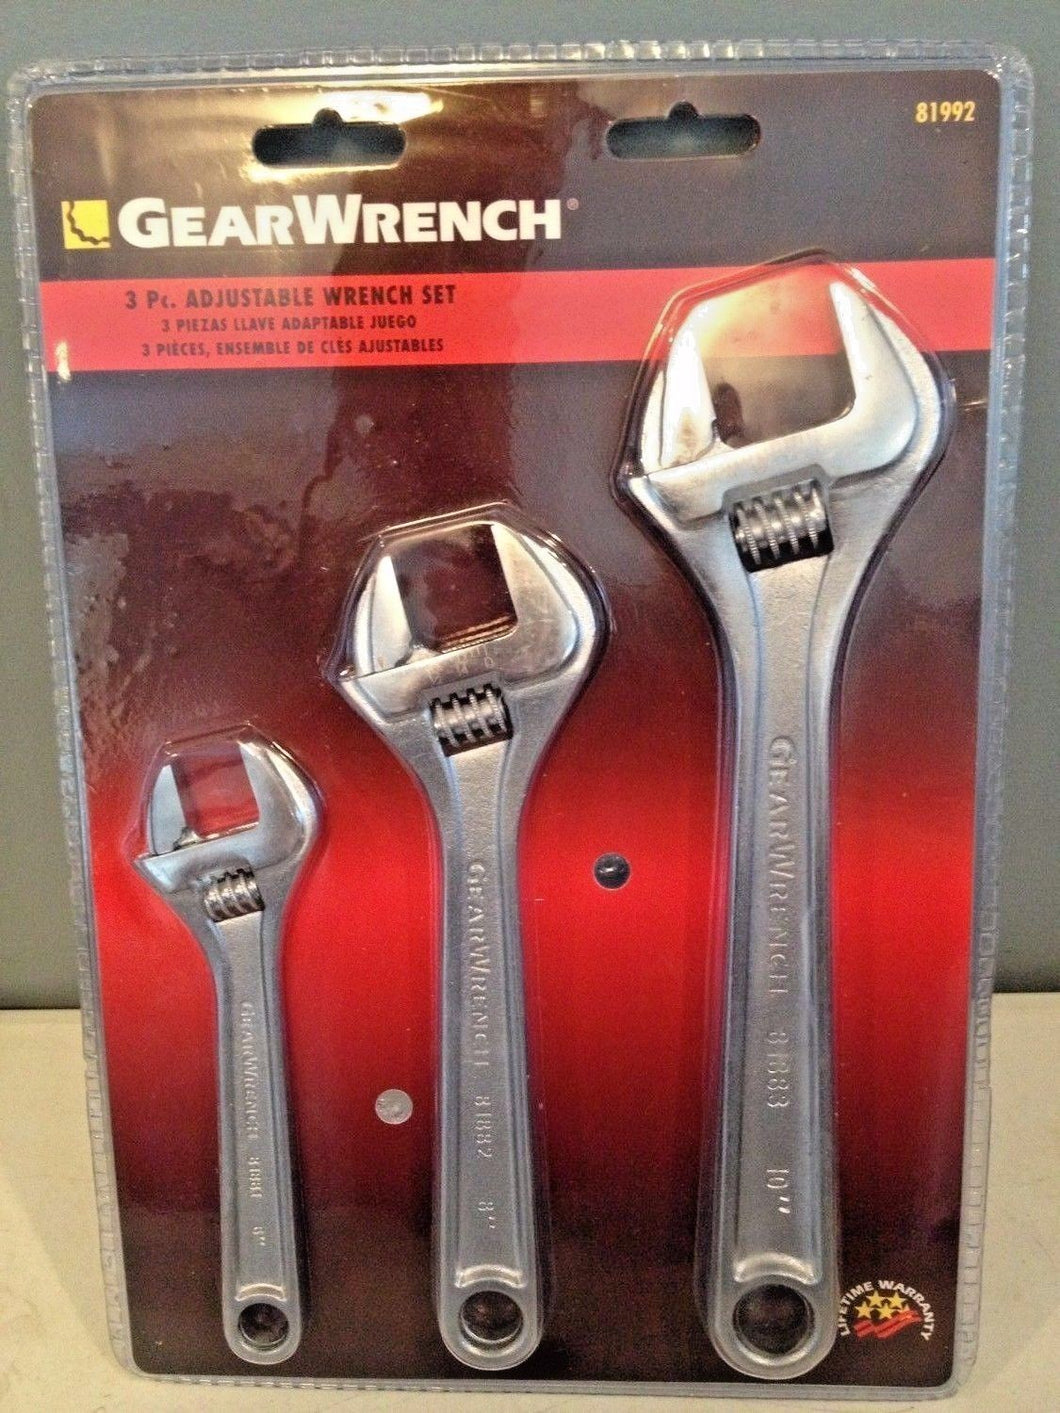 Gearwrench 81992 3 Piece Adjustable Wrench Set 10